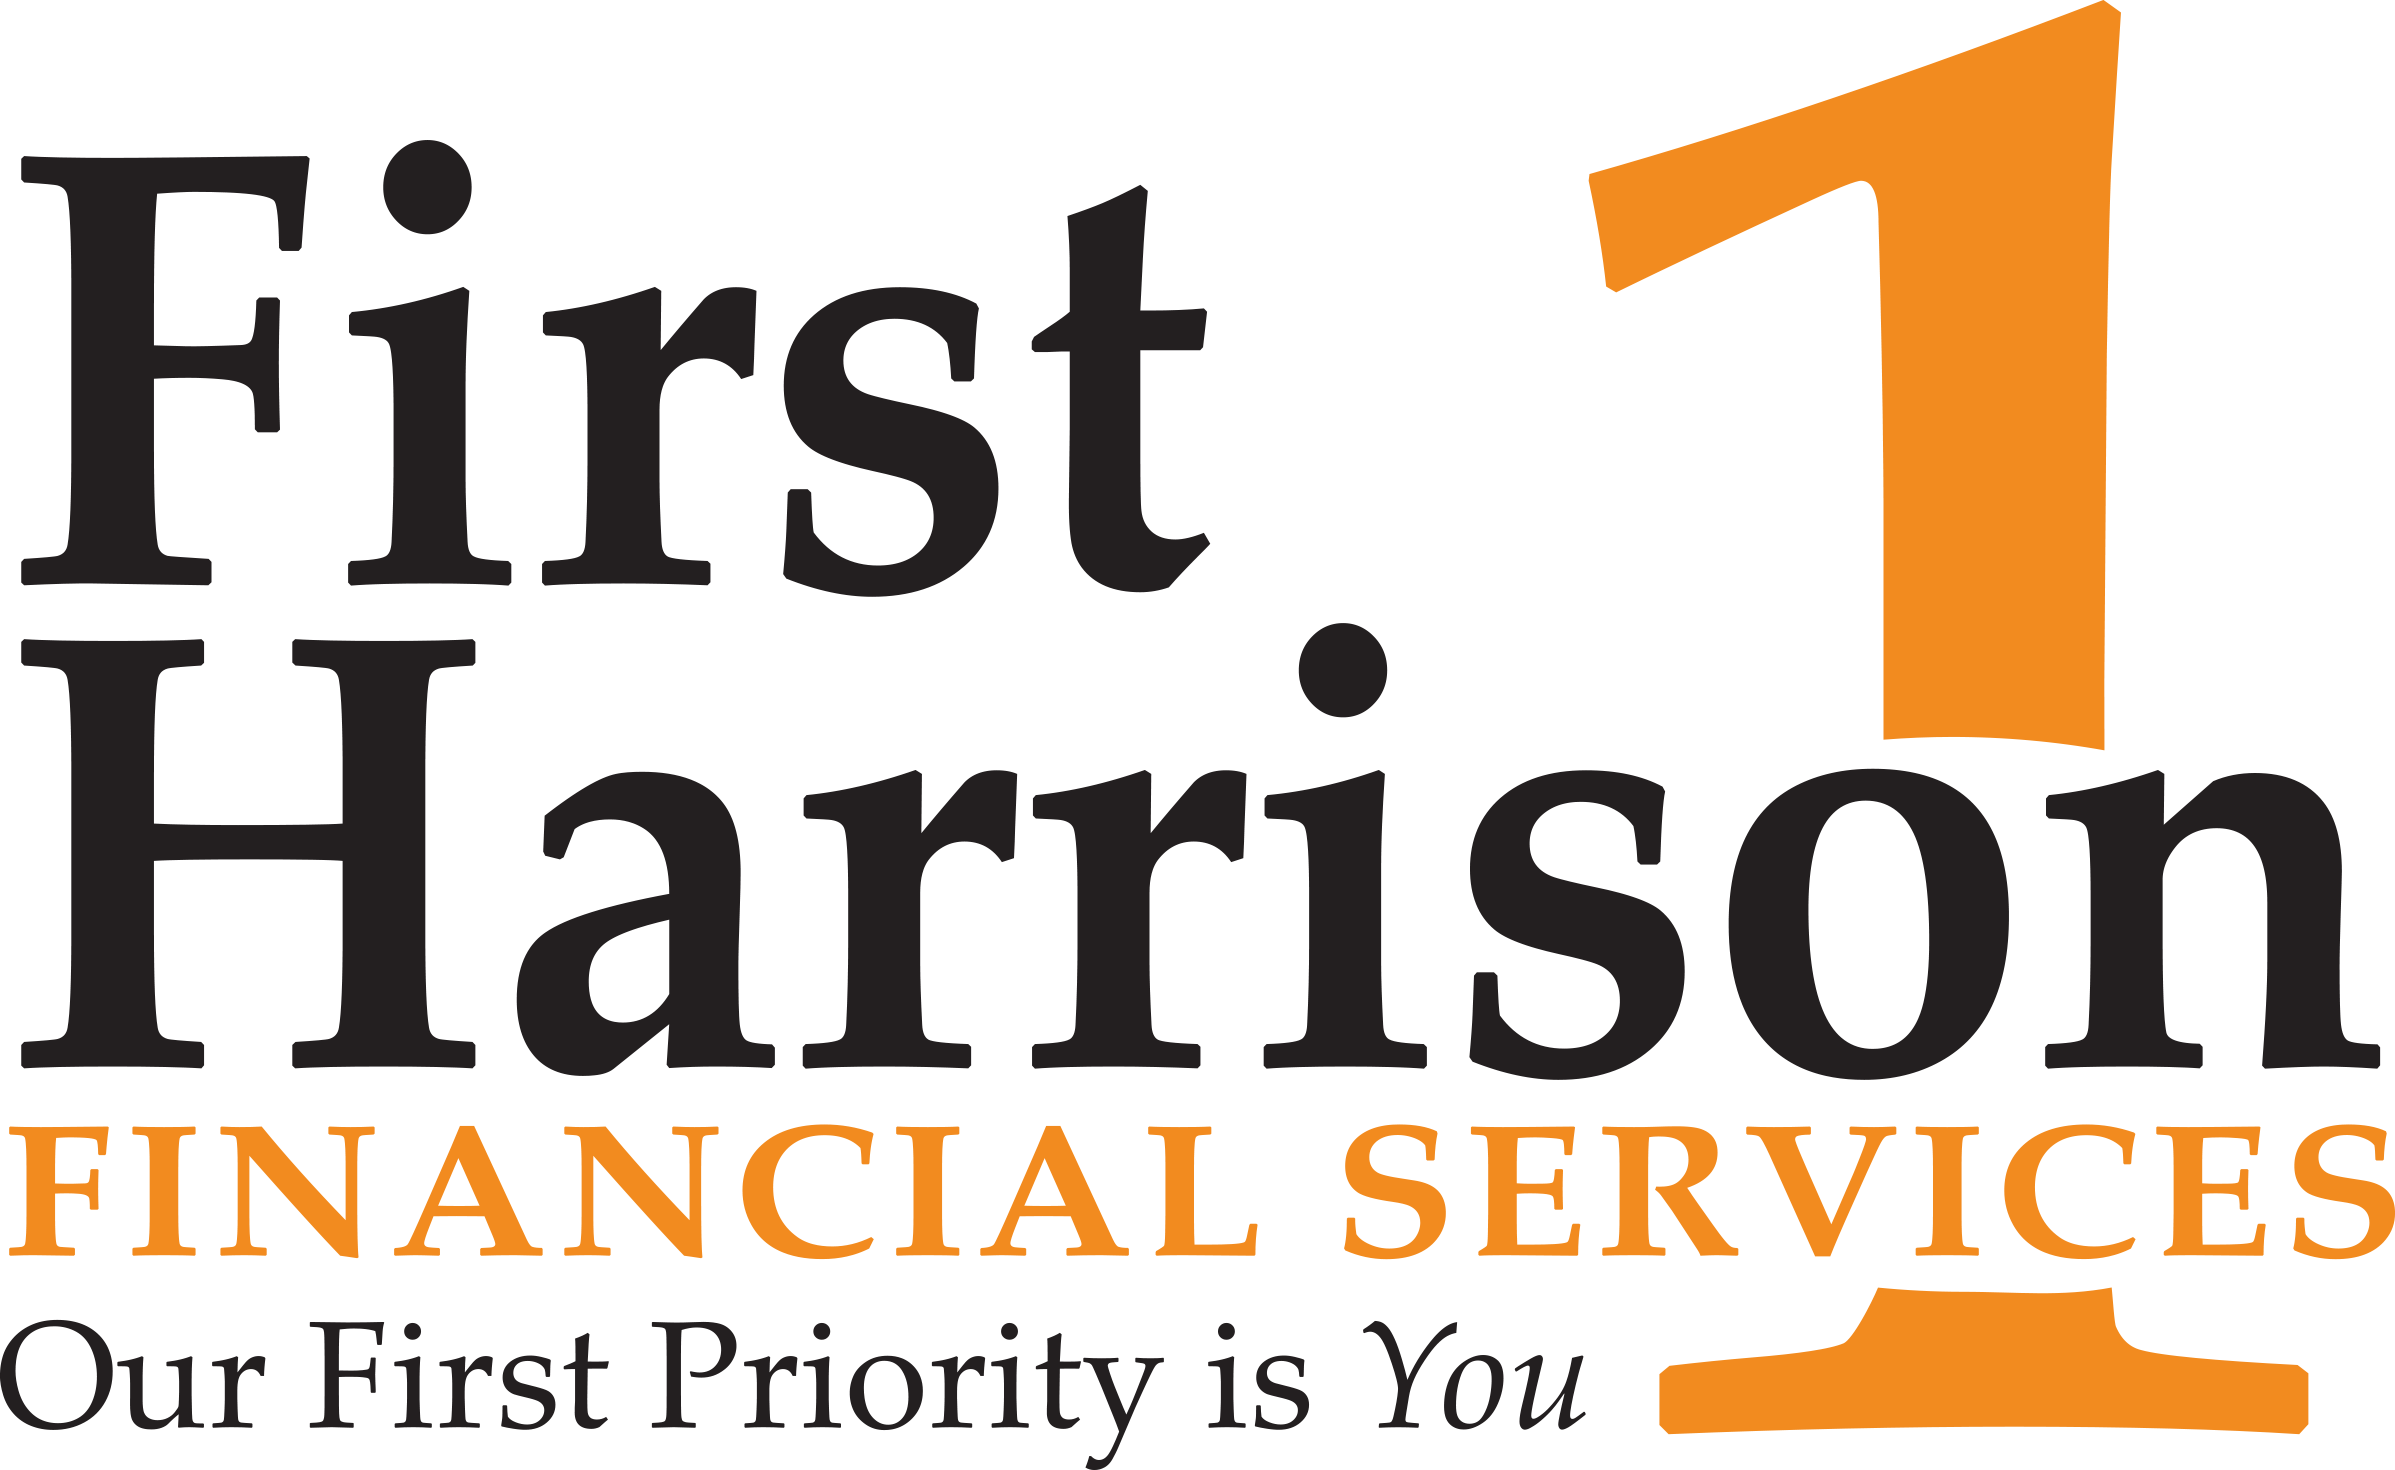 First Harrison Financial Services